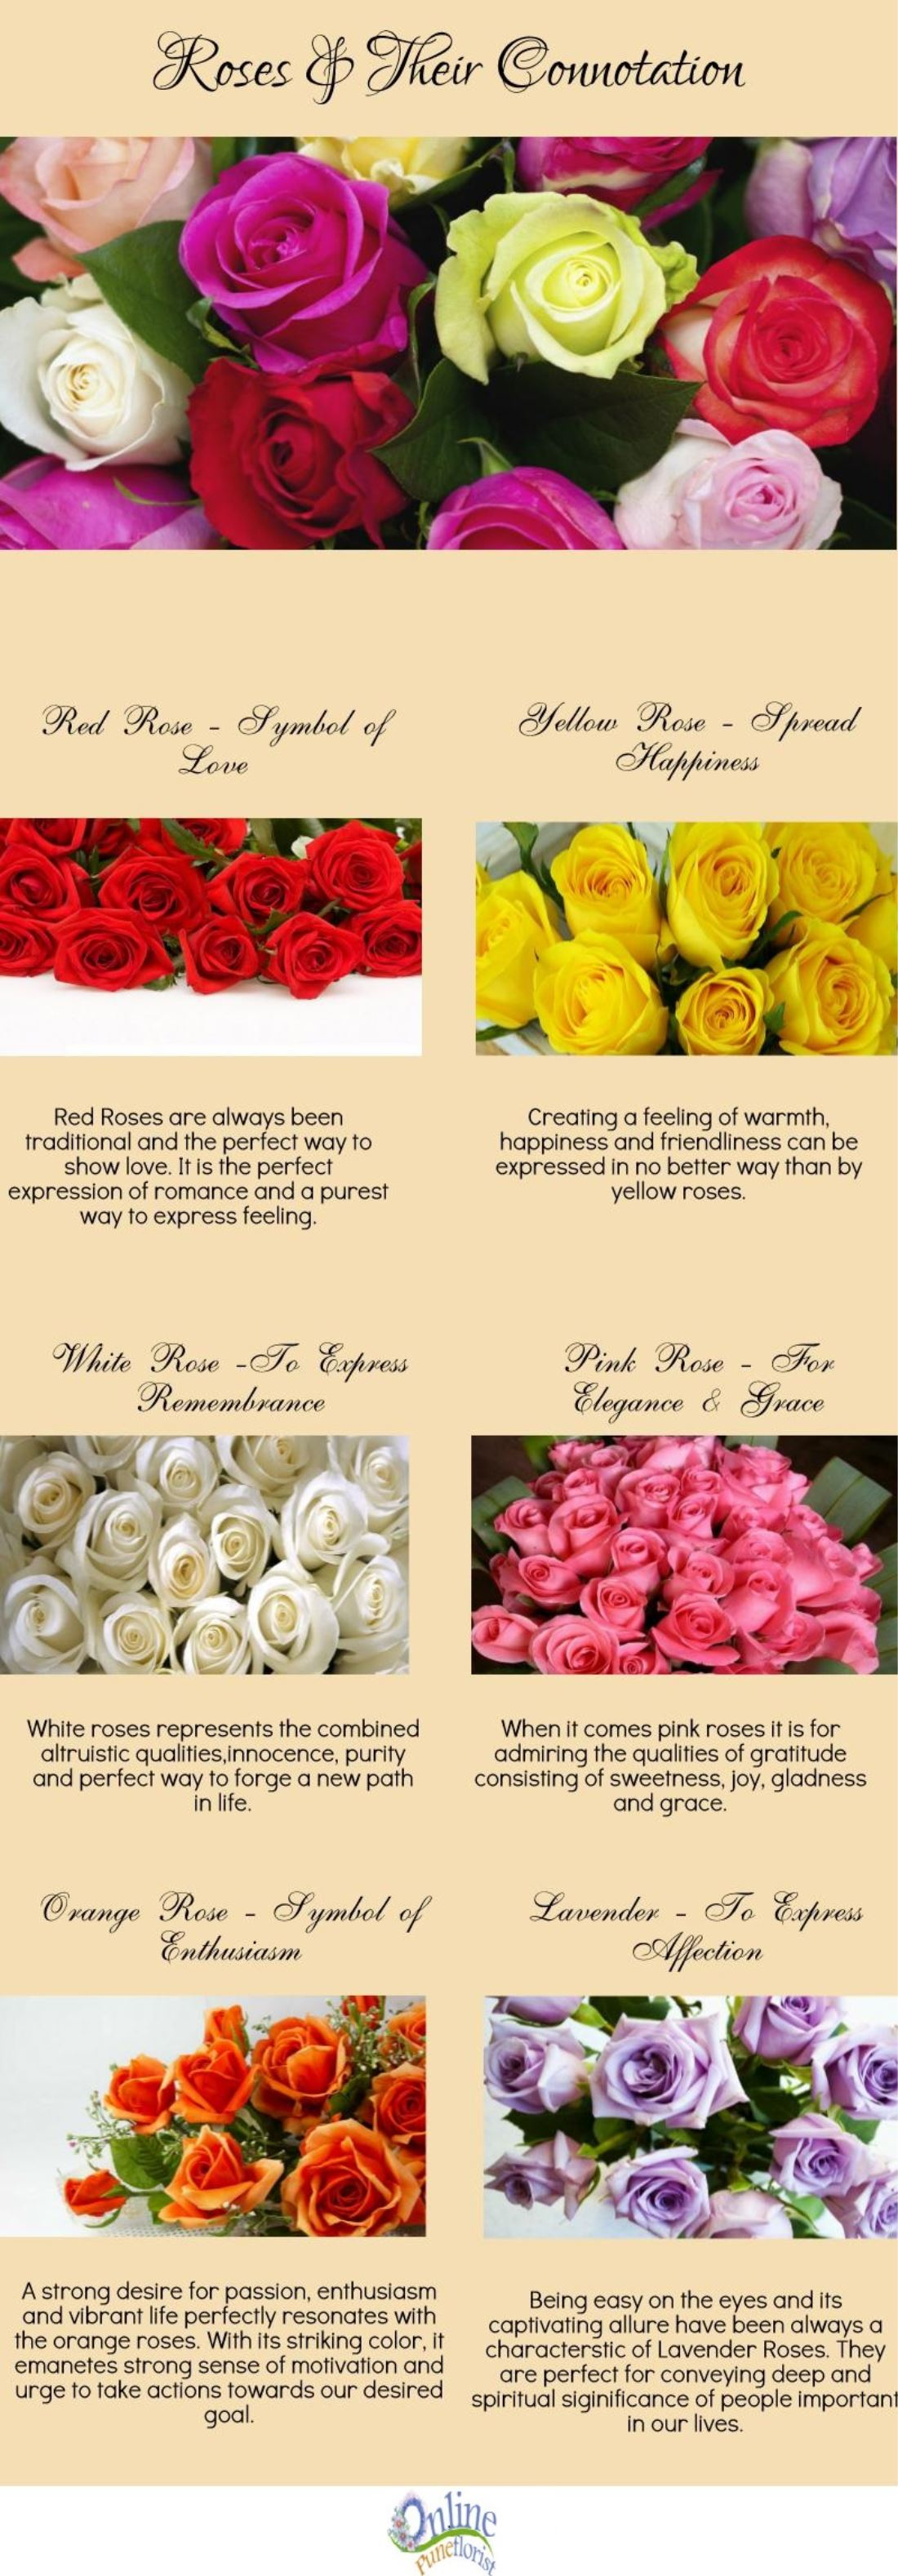 Roses The Meaning Of Happiness Benefits Of Roses Lifestyle Glitz